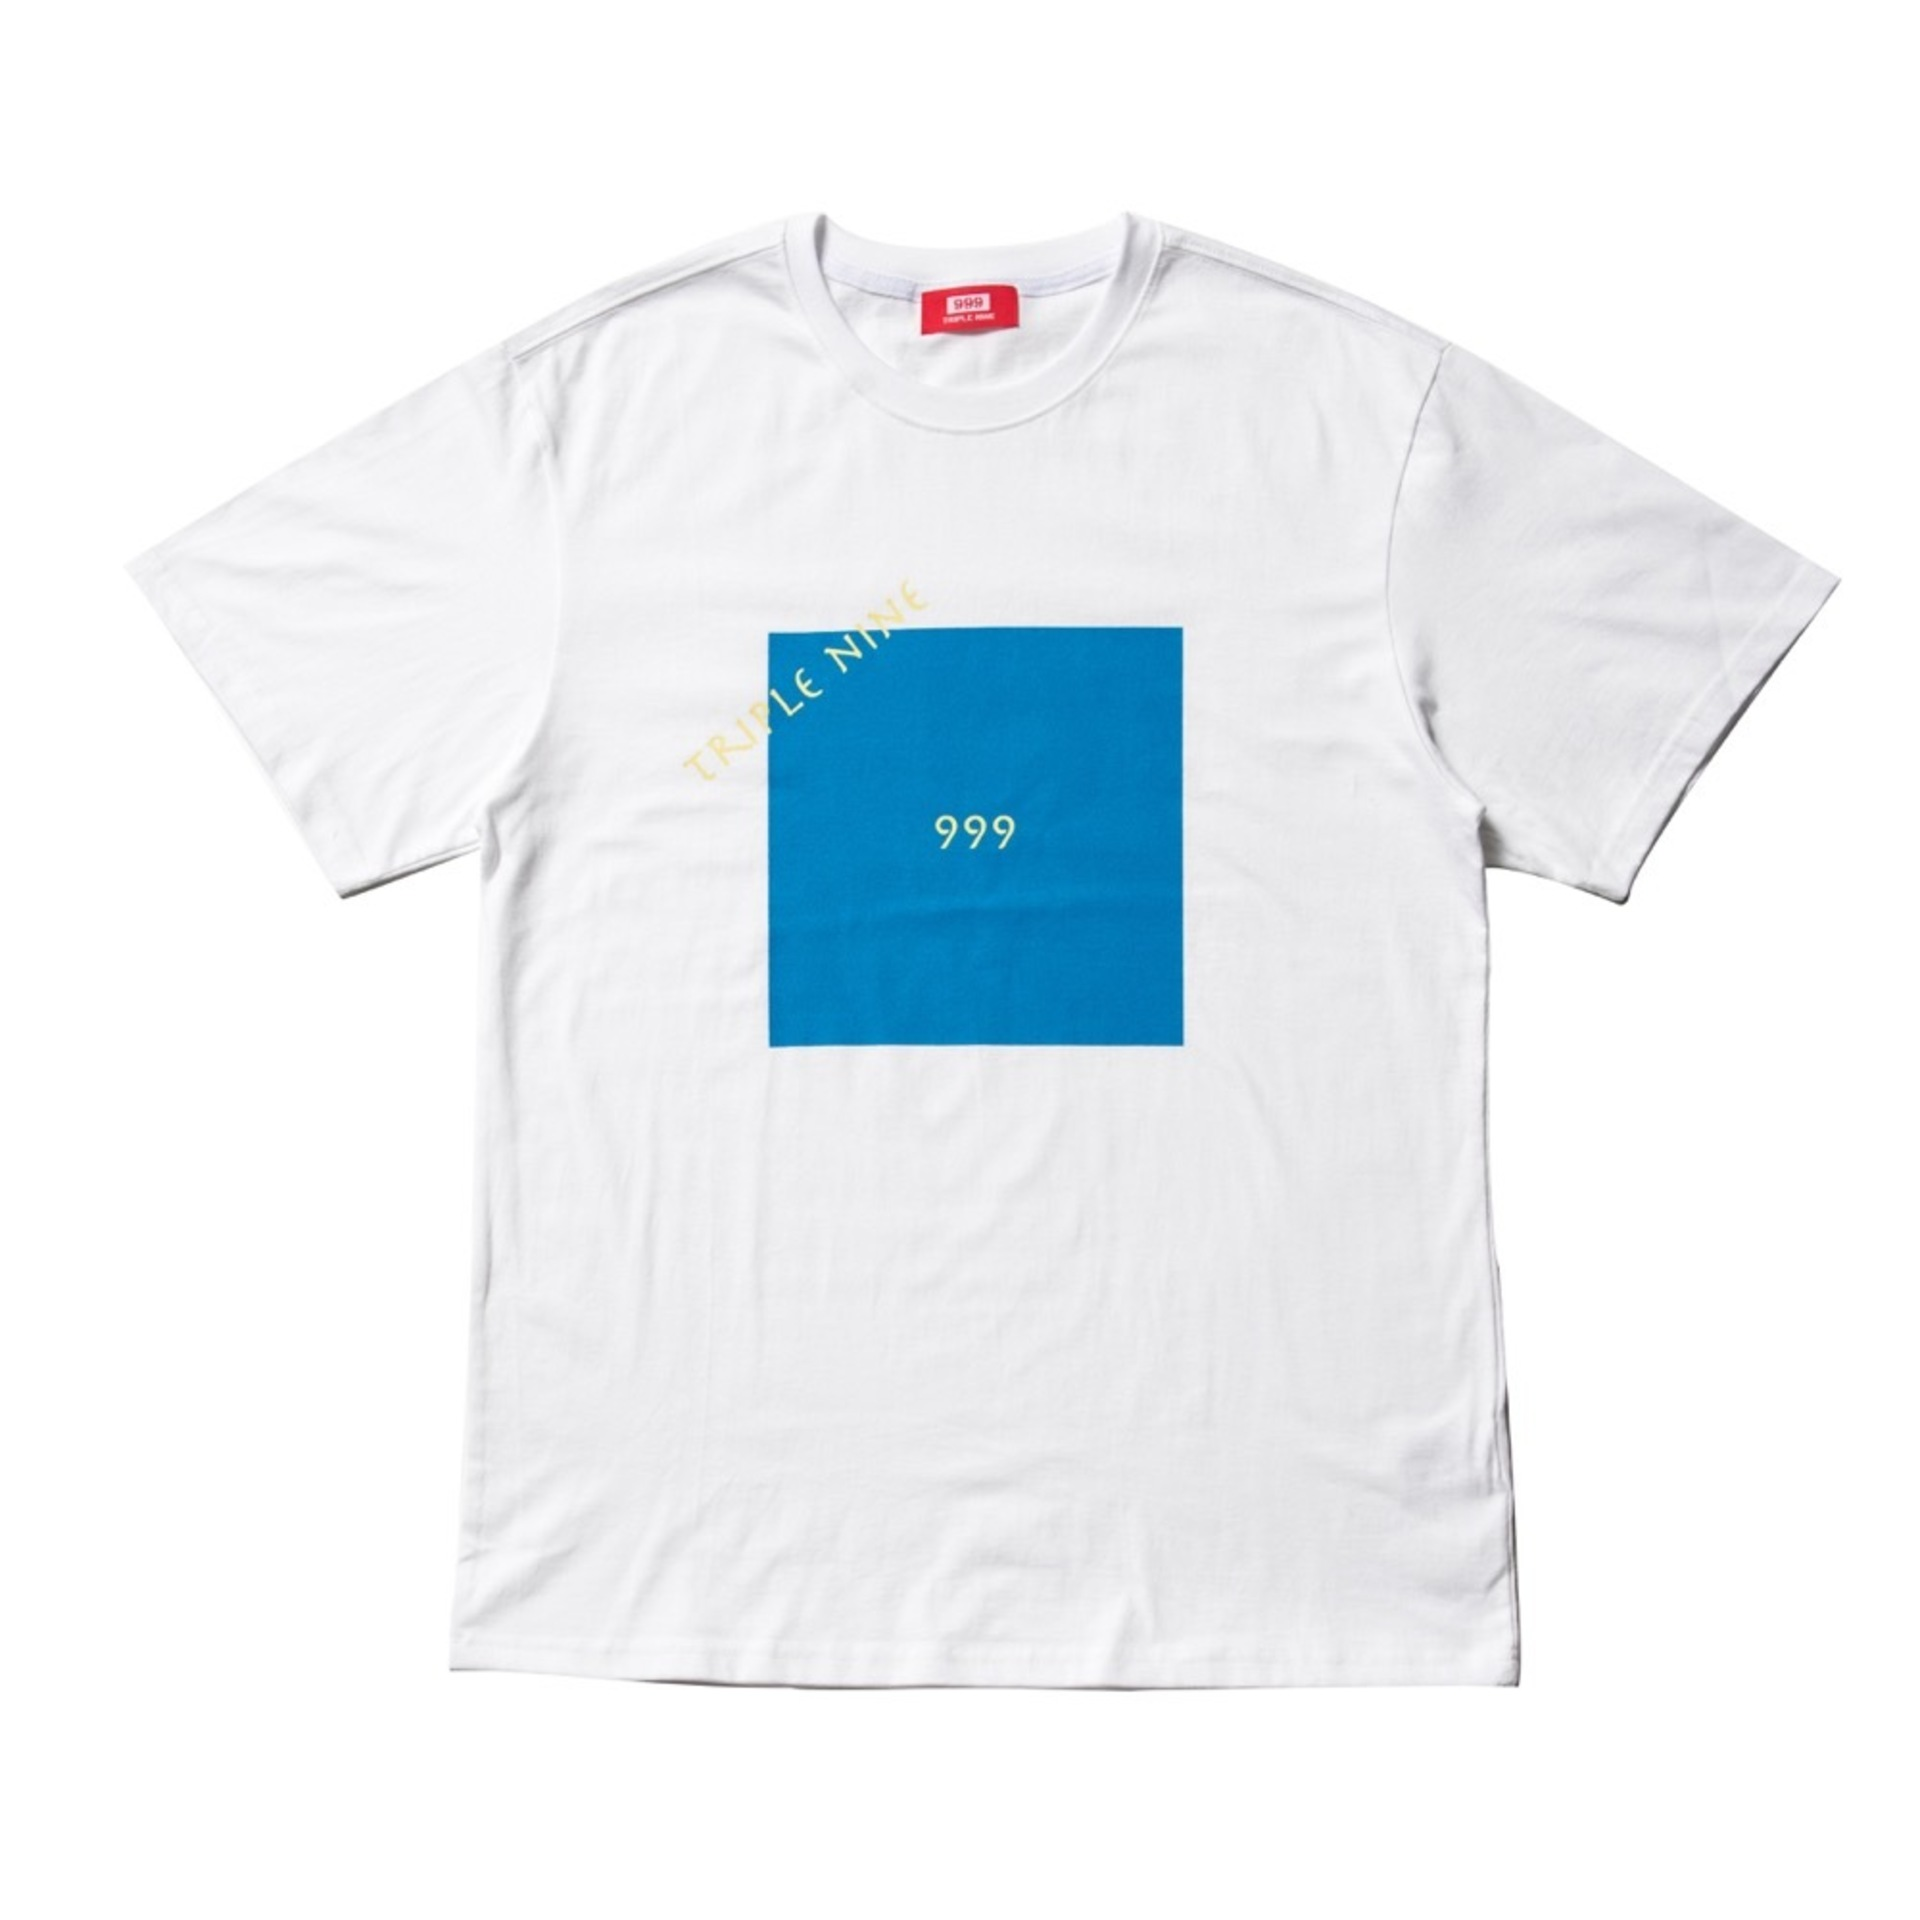 WHITE LOGO T-SHIRT#1